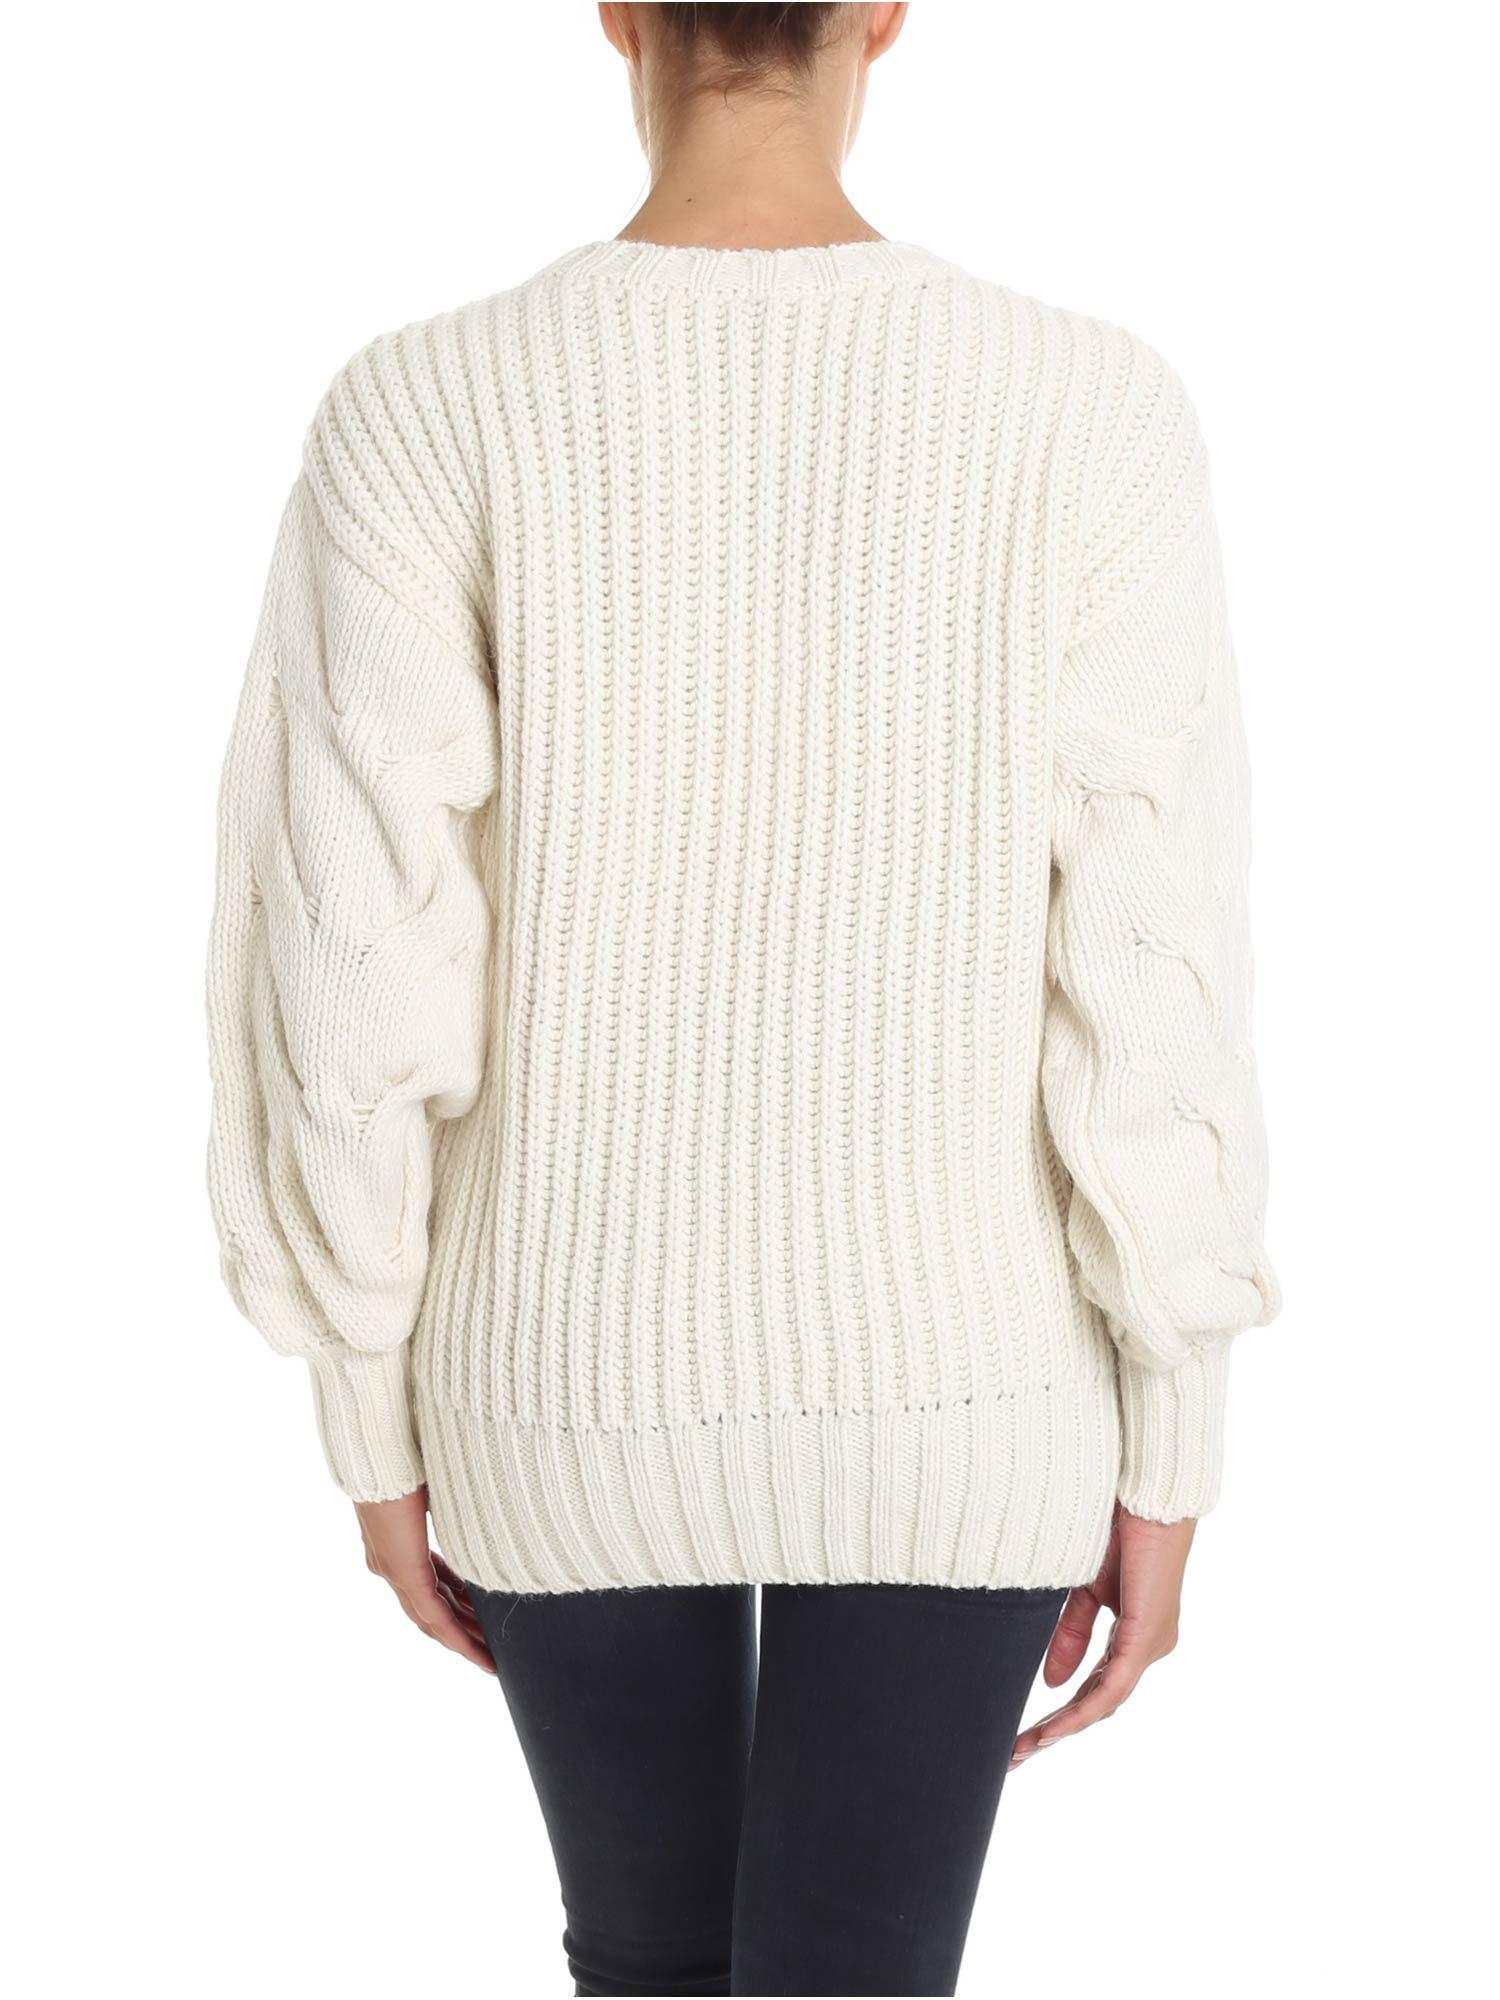 P.A.R.O.S.H. Wool Cream-color Knitted Pullover in Natural